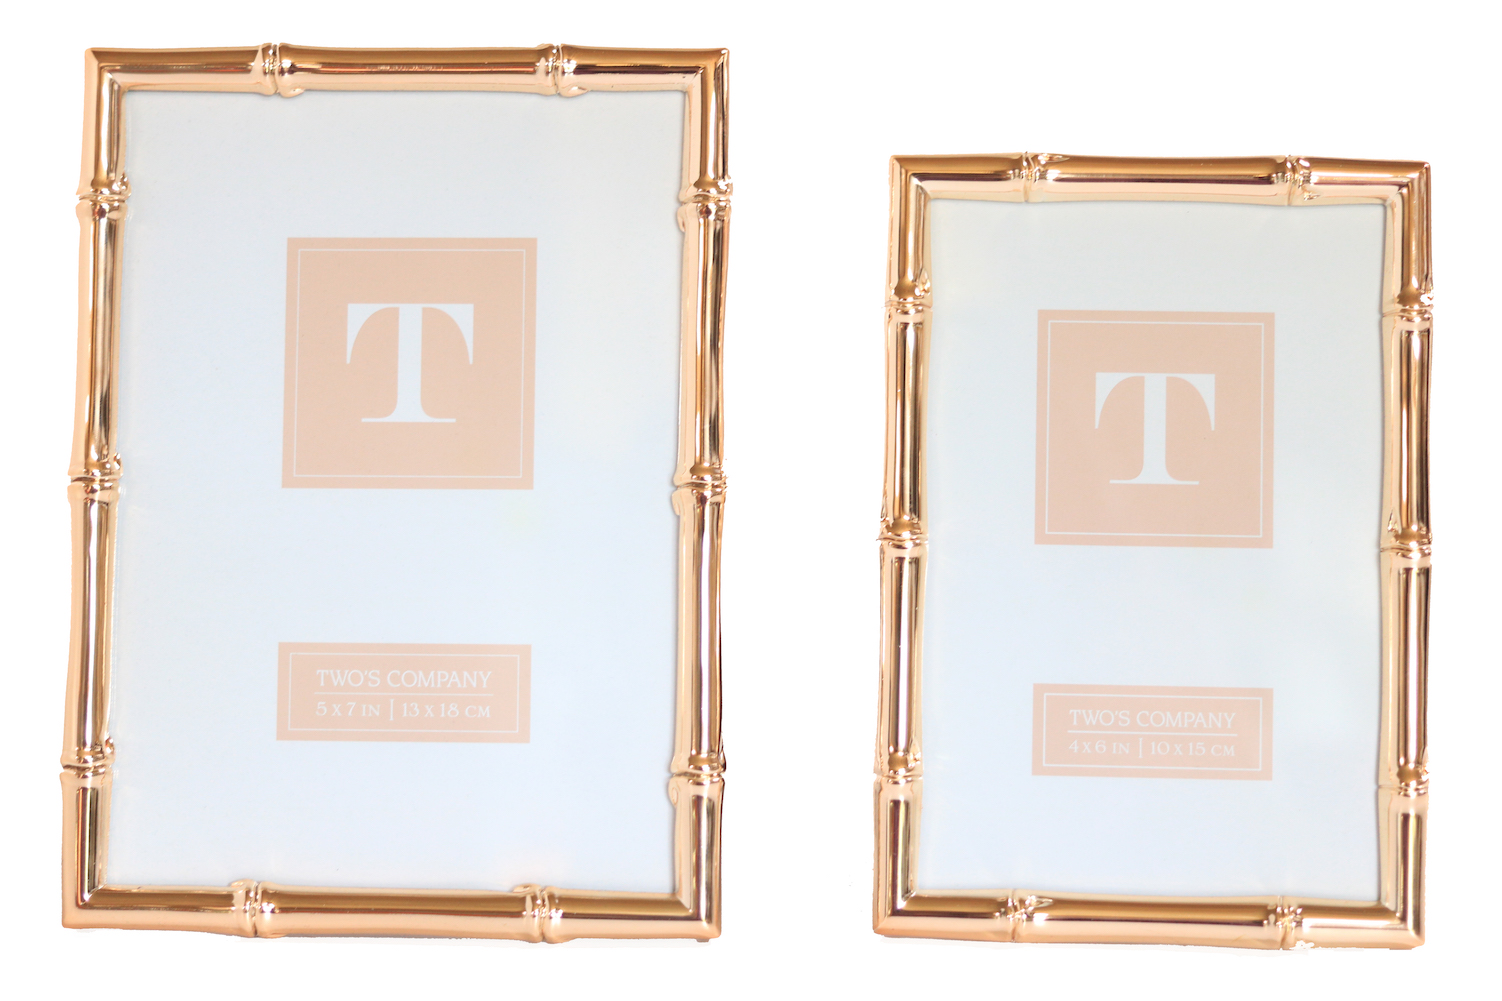 Two\'s Company - 4x6 & 5x7 Bamboo Frame Set - Rose Gold 635648706078 ...